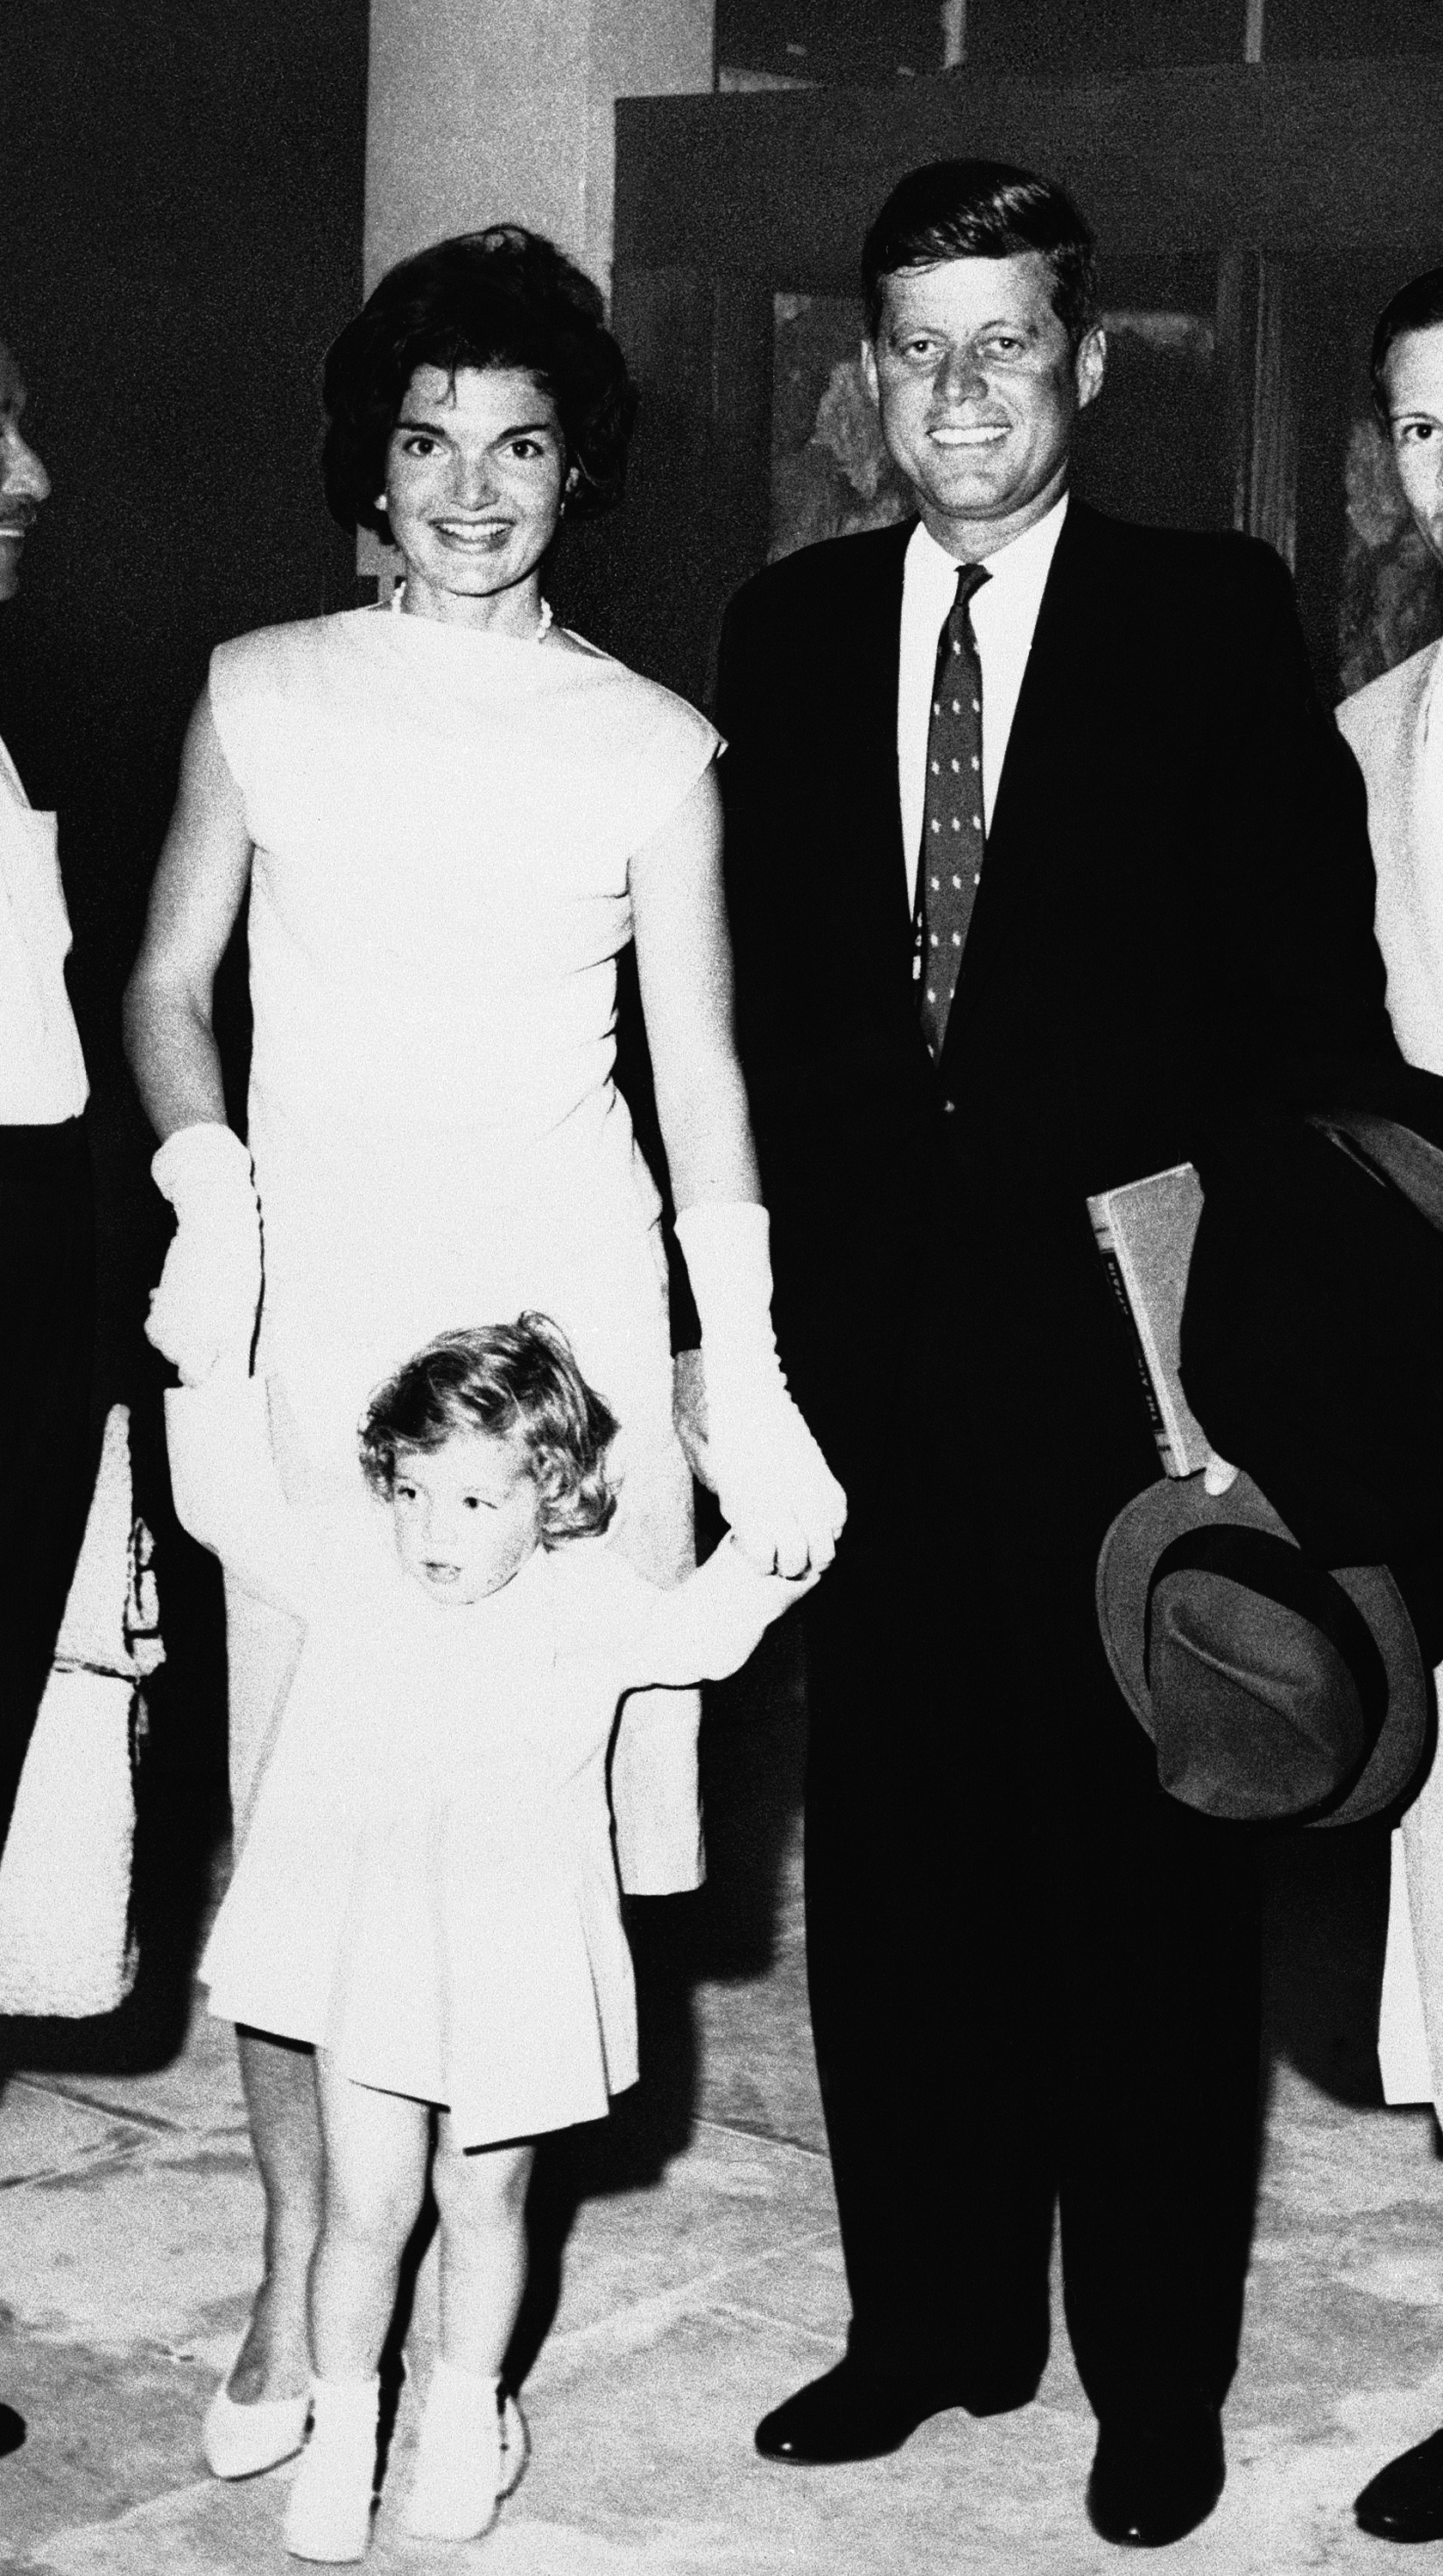 <div class='meta'><div class='origin-logo' data-origin='none'></div><span class='caption-text' data-credit='ASSOCIATED PRESS'>Senator John F. Kennedy (D-Mass.) arrives with his wife Jacqueline and their 2-year-old daughter Caroline at Montego Bay Airport, Jamaica on Dec. 24, 1959 for a 12-day vacation.</span></div>